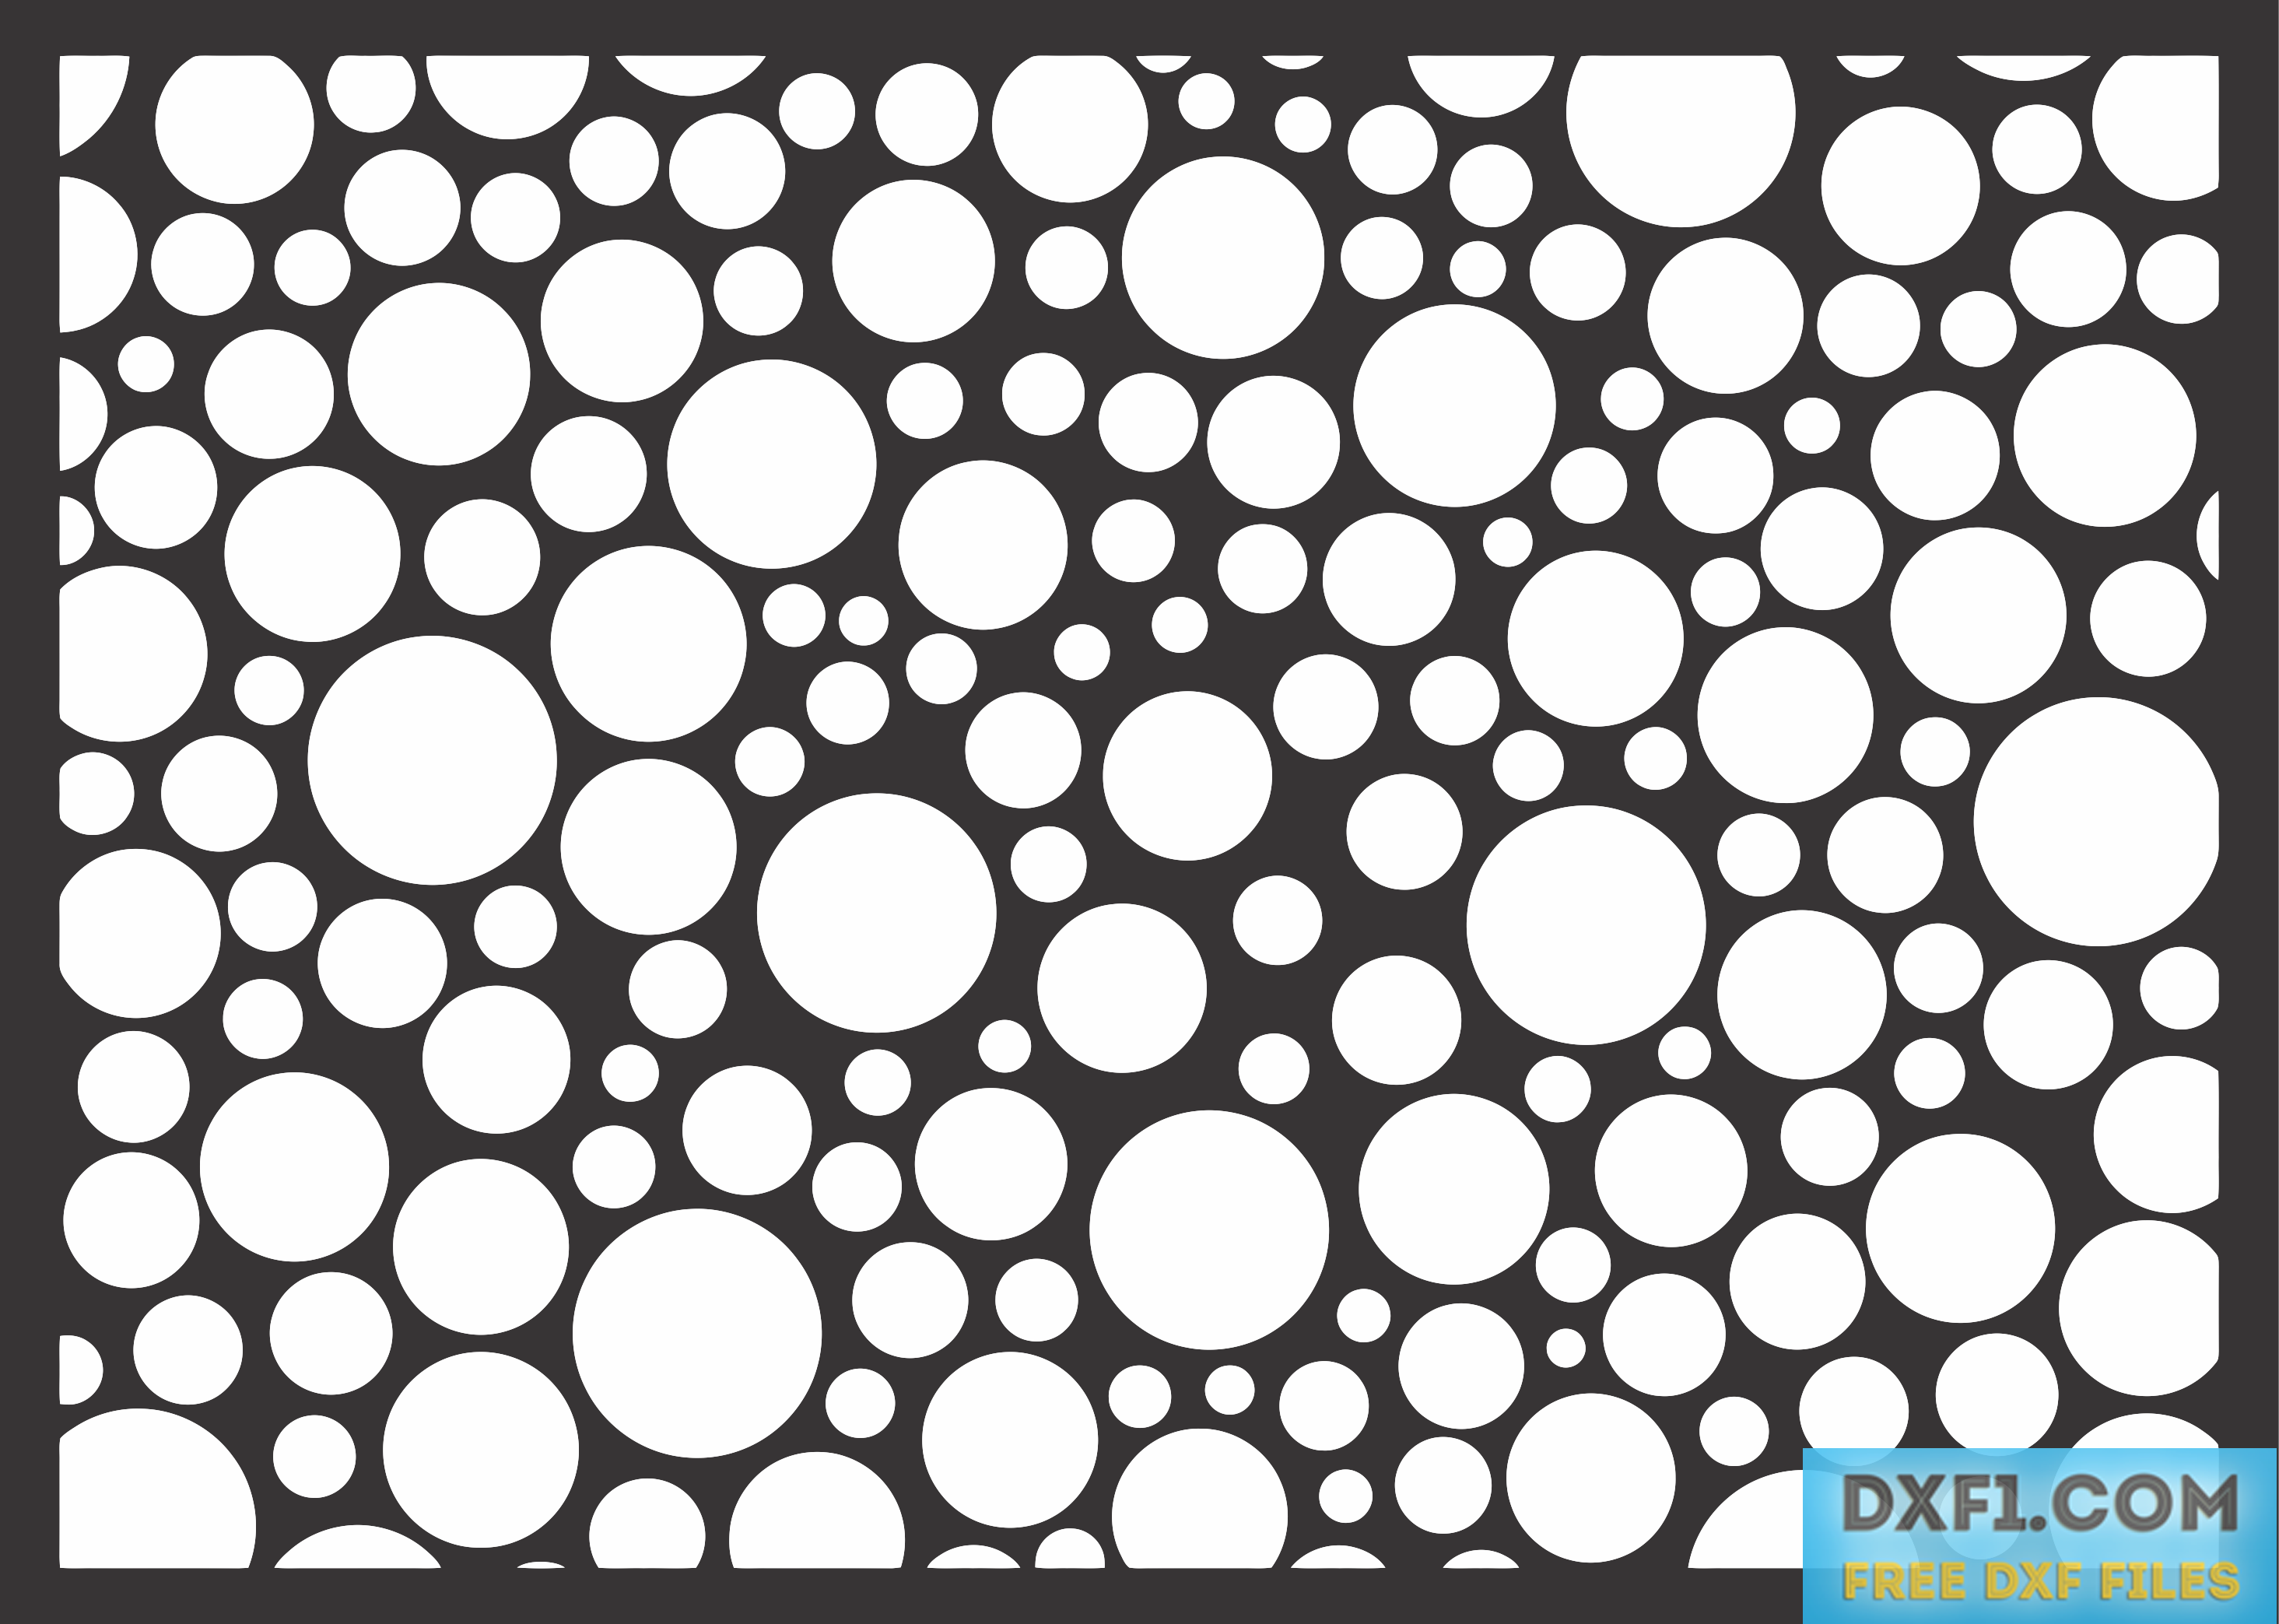 Decorative Panel With Circles Download Contains Various